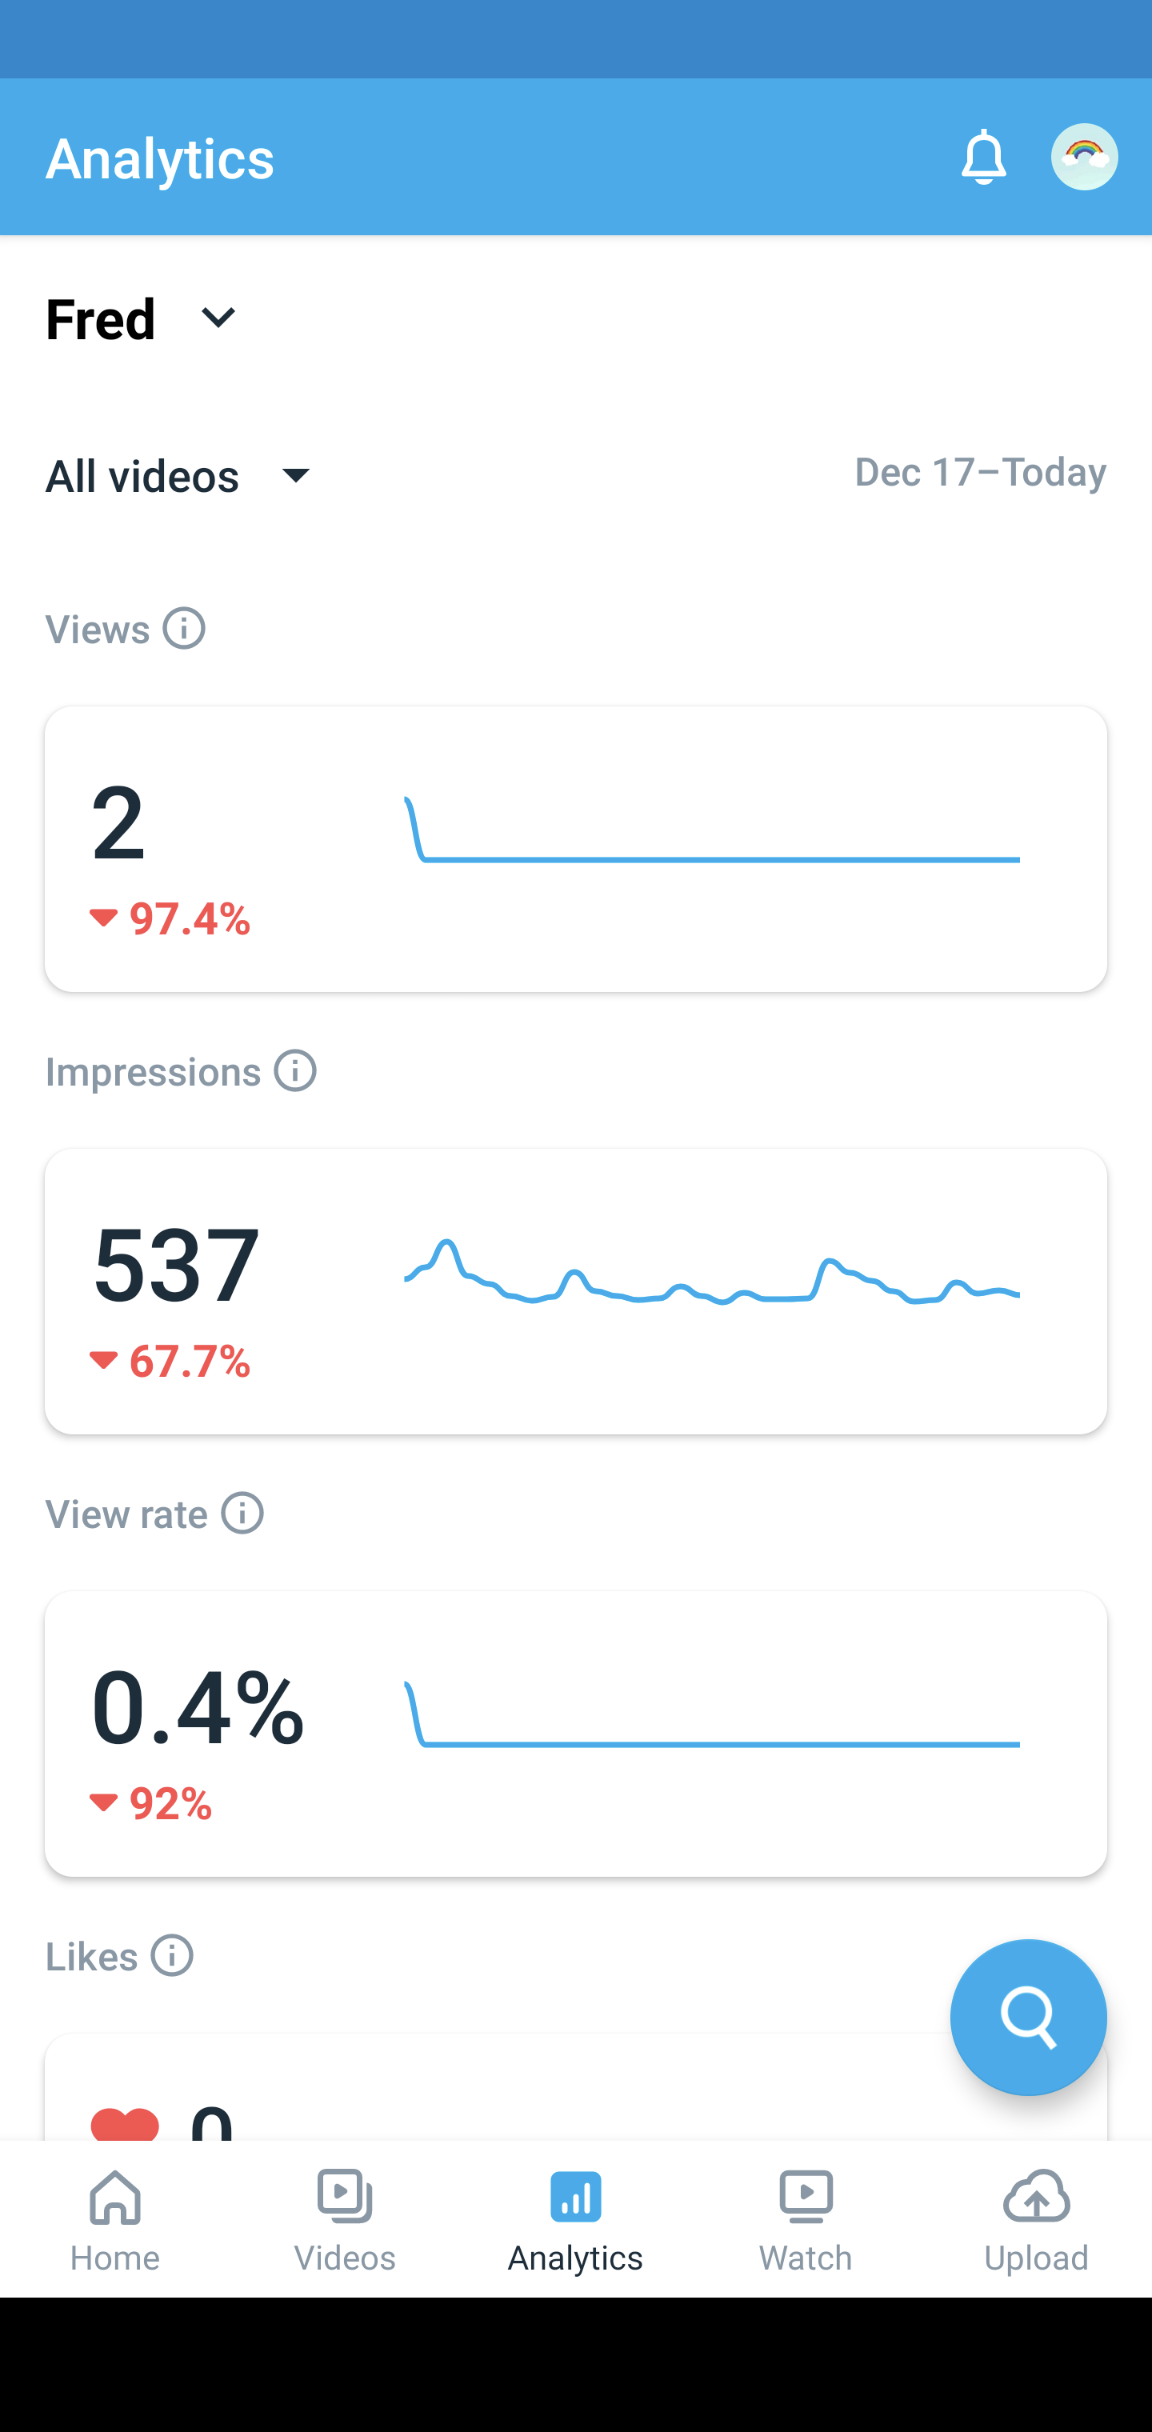 Video_analytics_overview.png